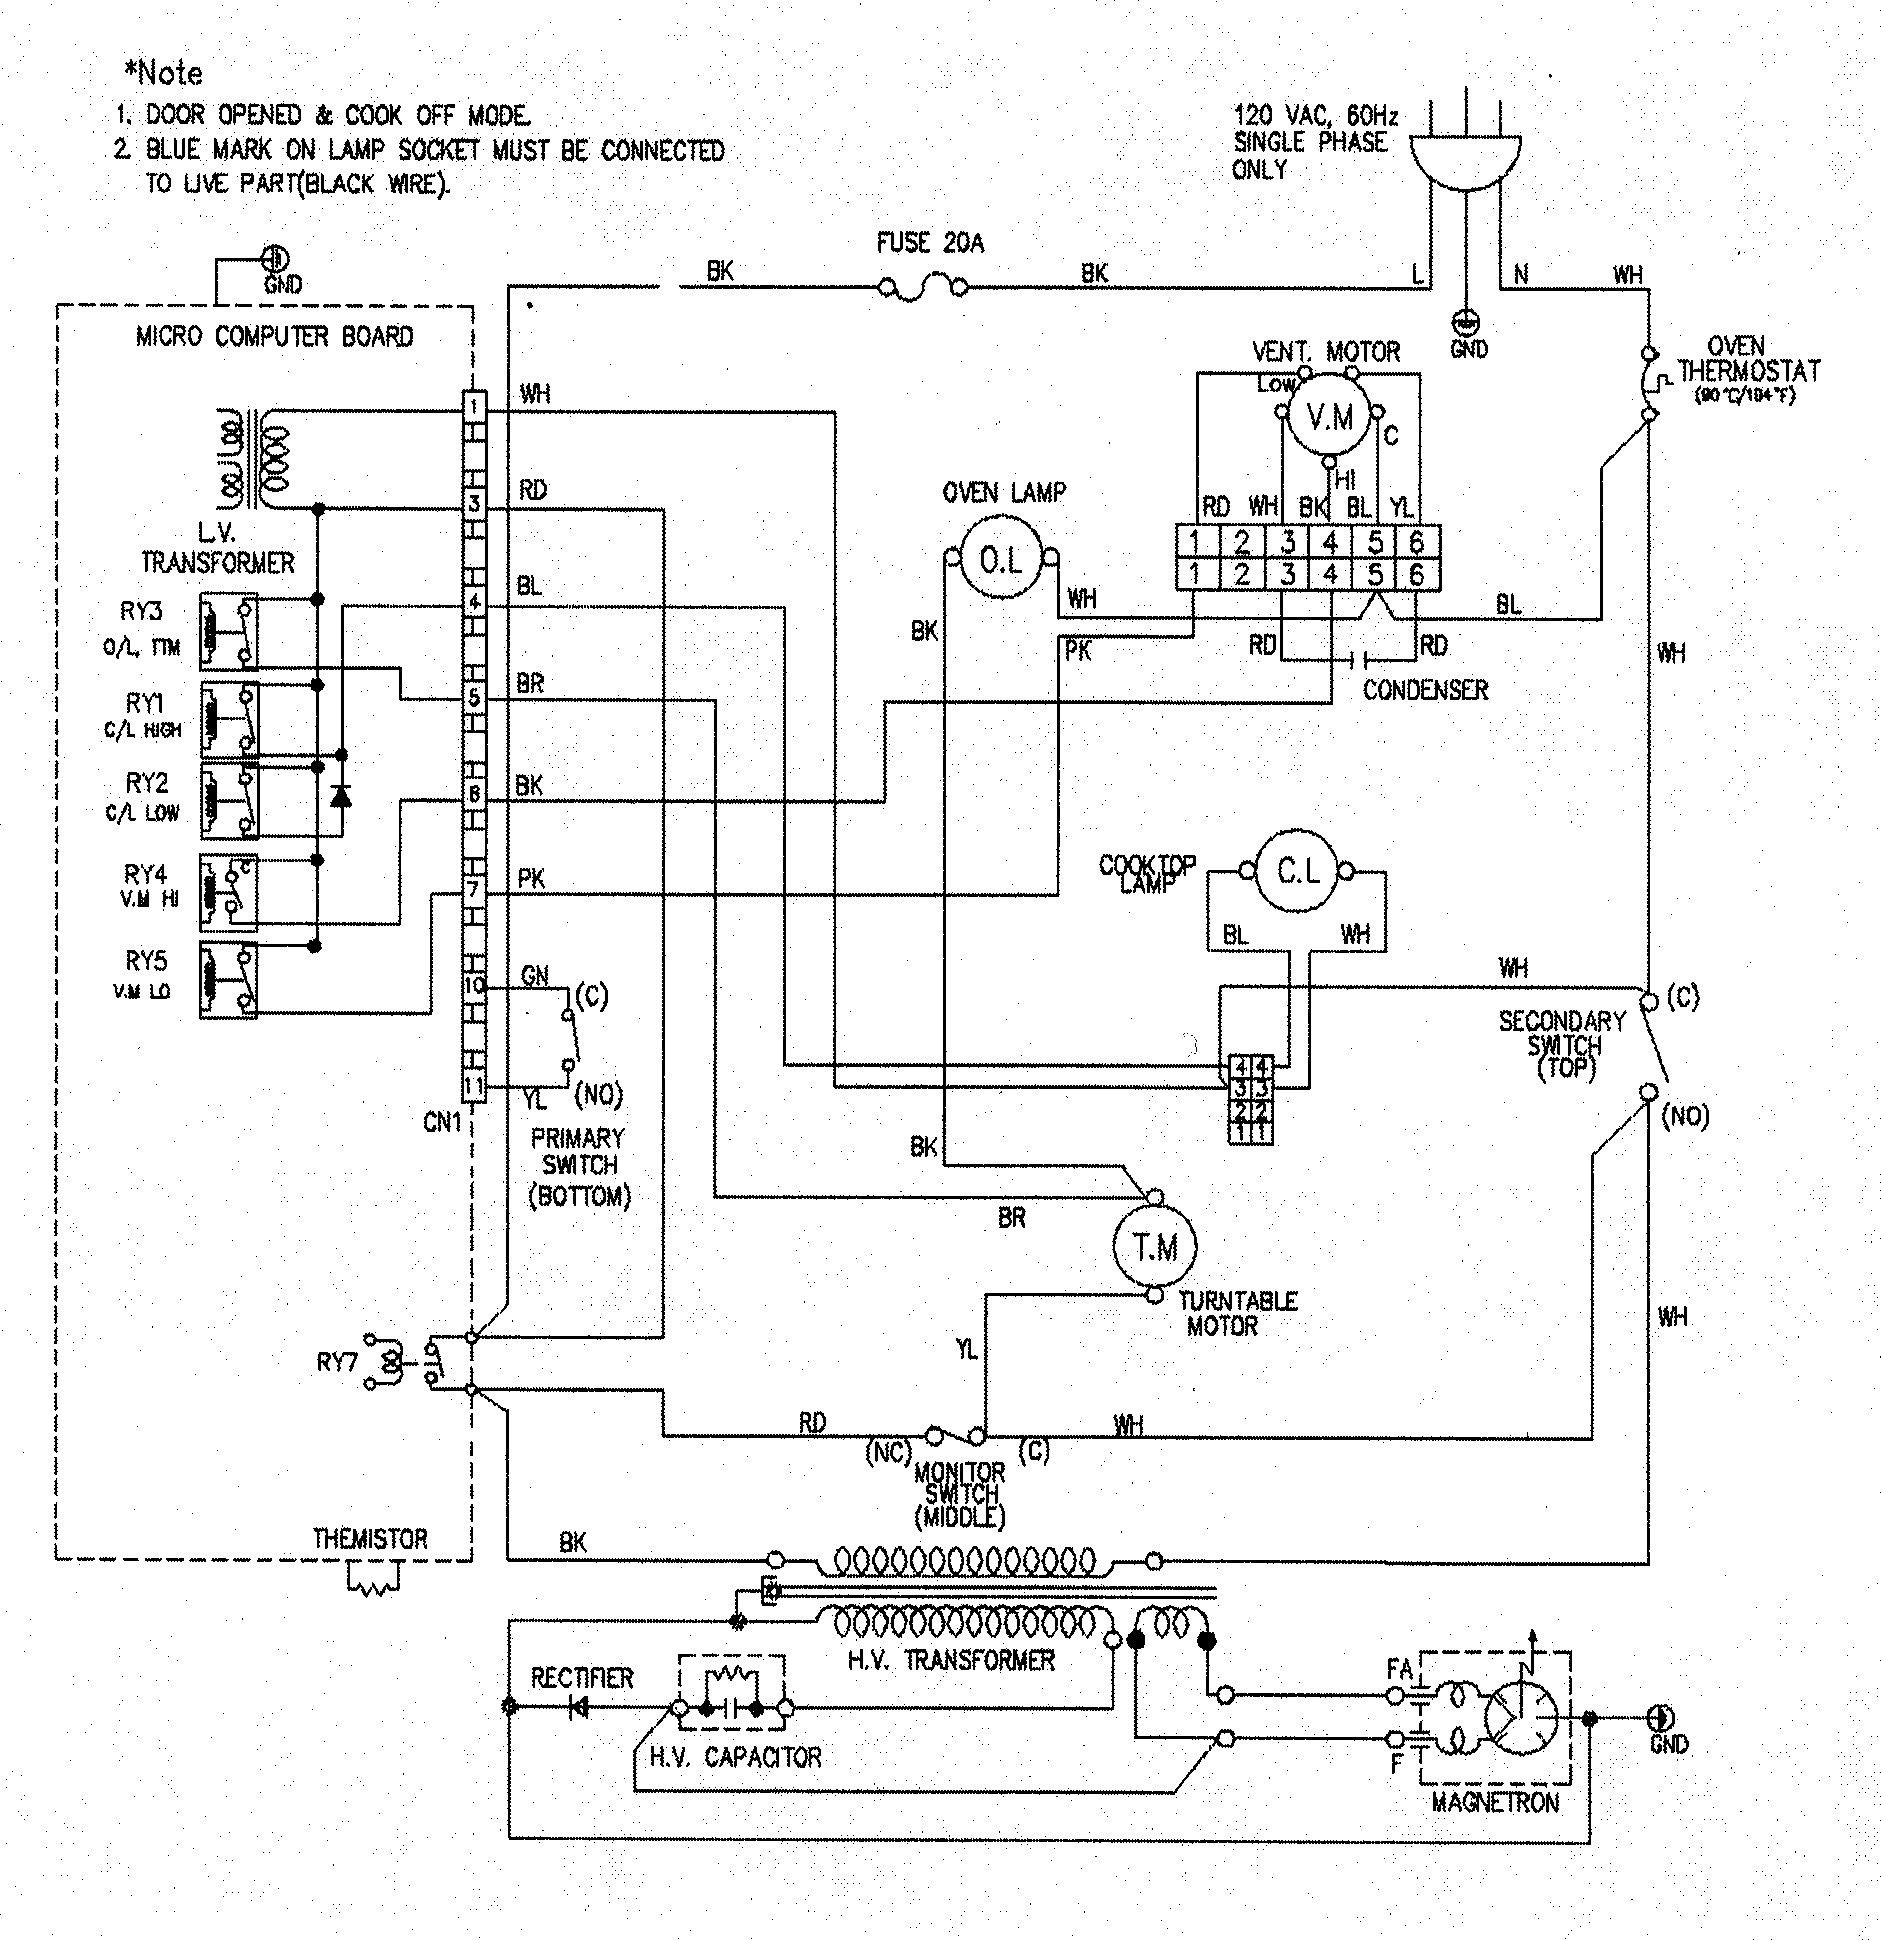 New Wiring Diagram For Ge Electric Motor Diagram Diagramsample Diagramtemplate Wiringdiagram Diagram Thermostat Wiring Electric Oven Electric Oven And Hob